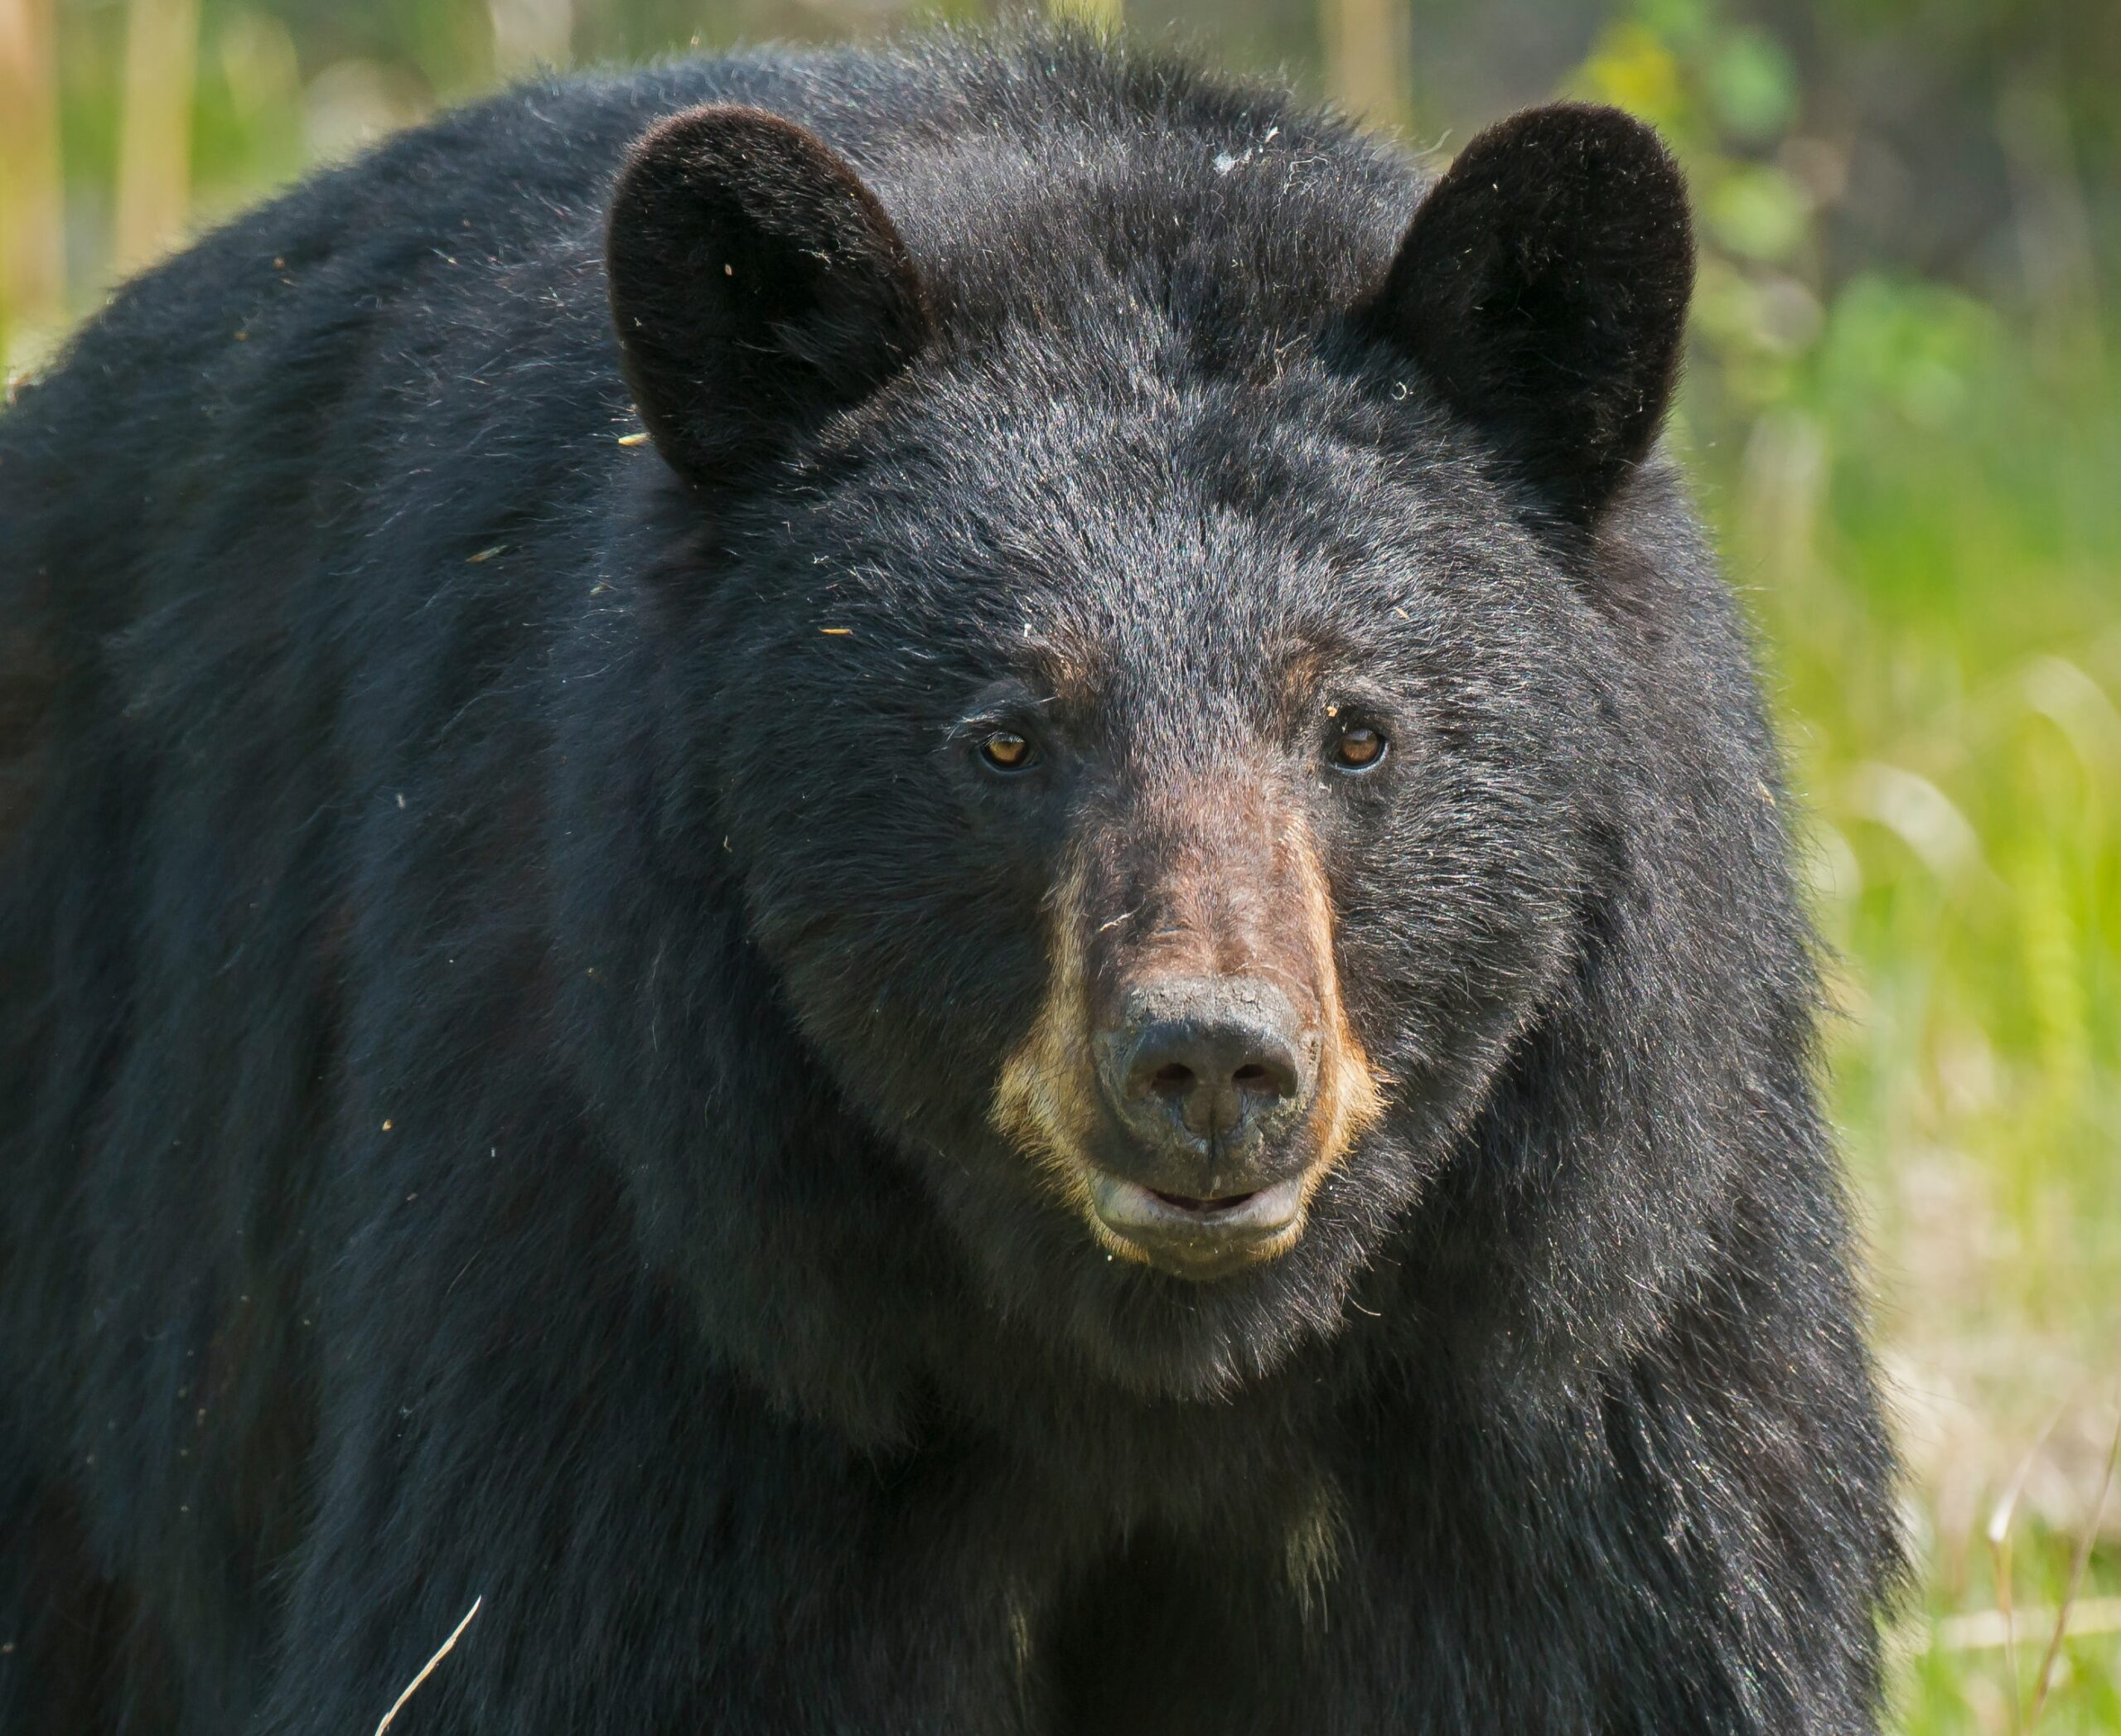 close up of black bear's face in the forest